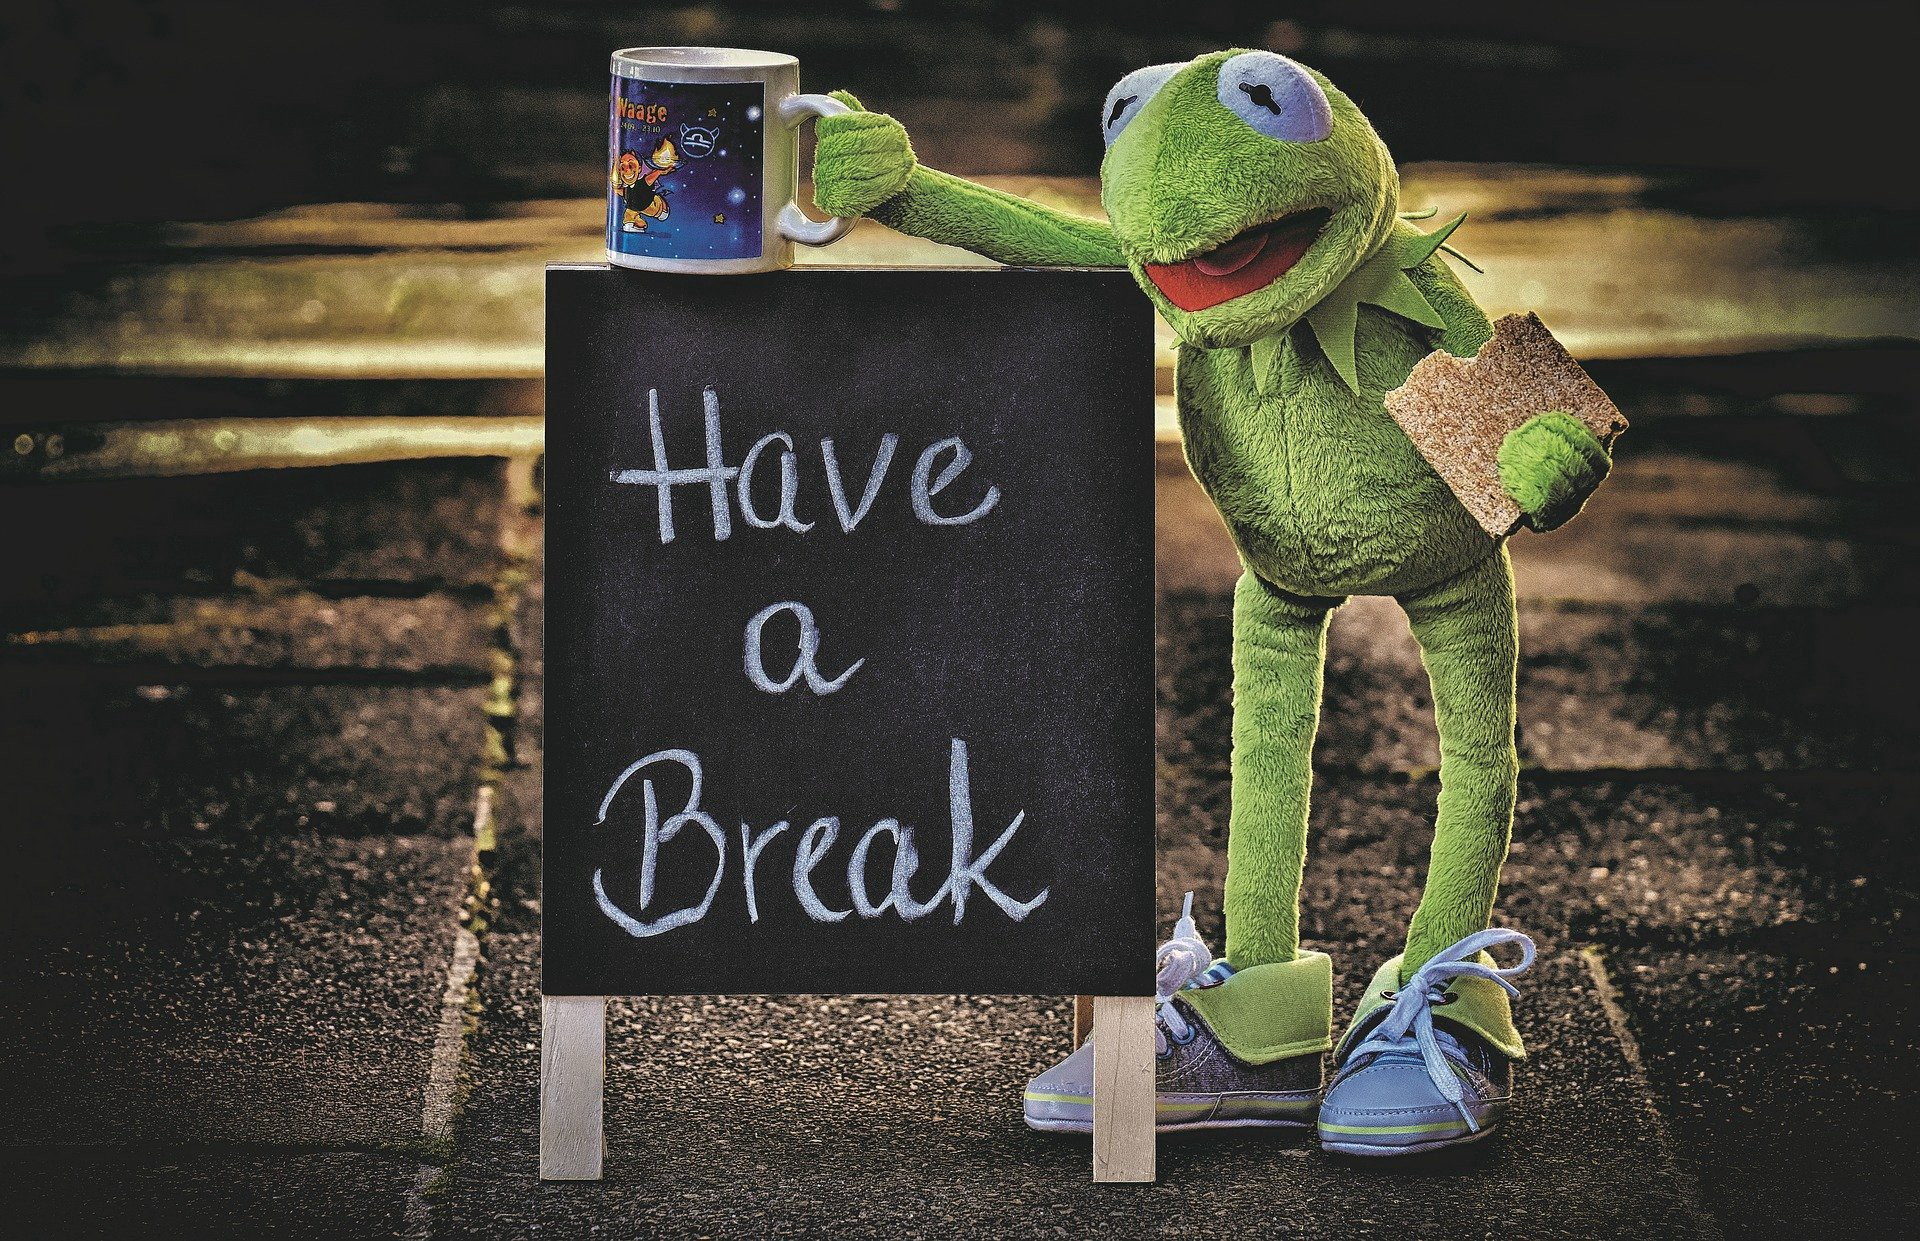 Kermit the Frog next to a blackboard that says Have a Break